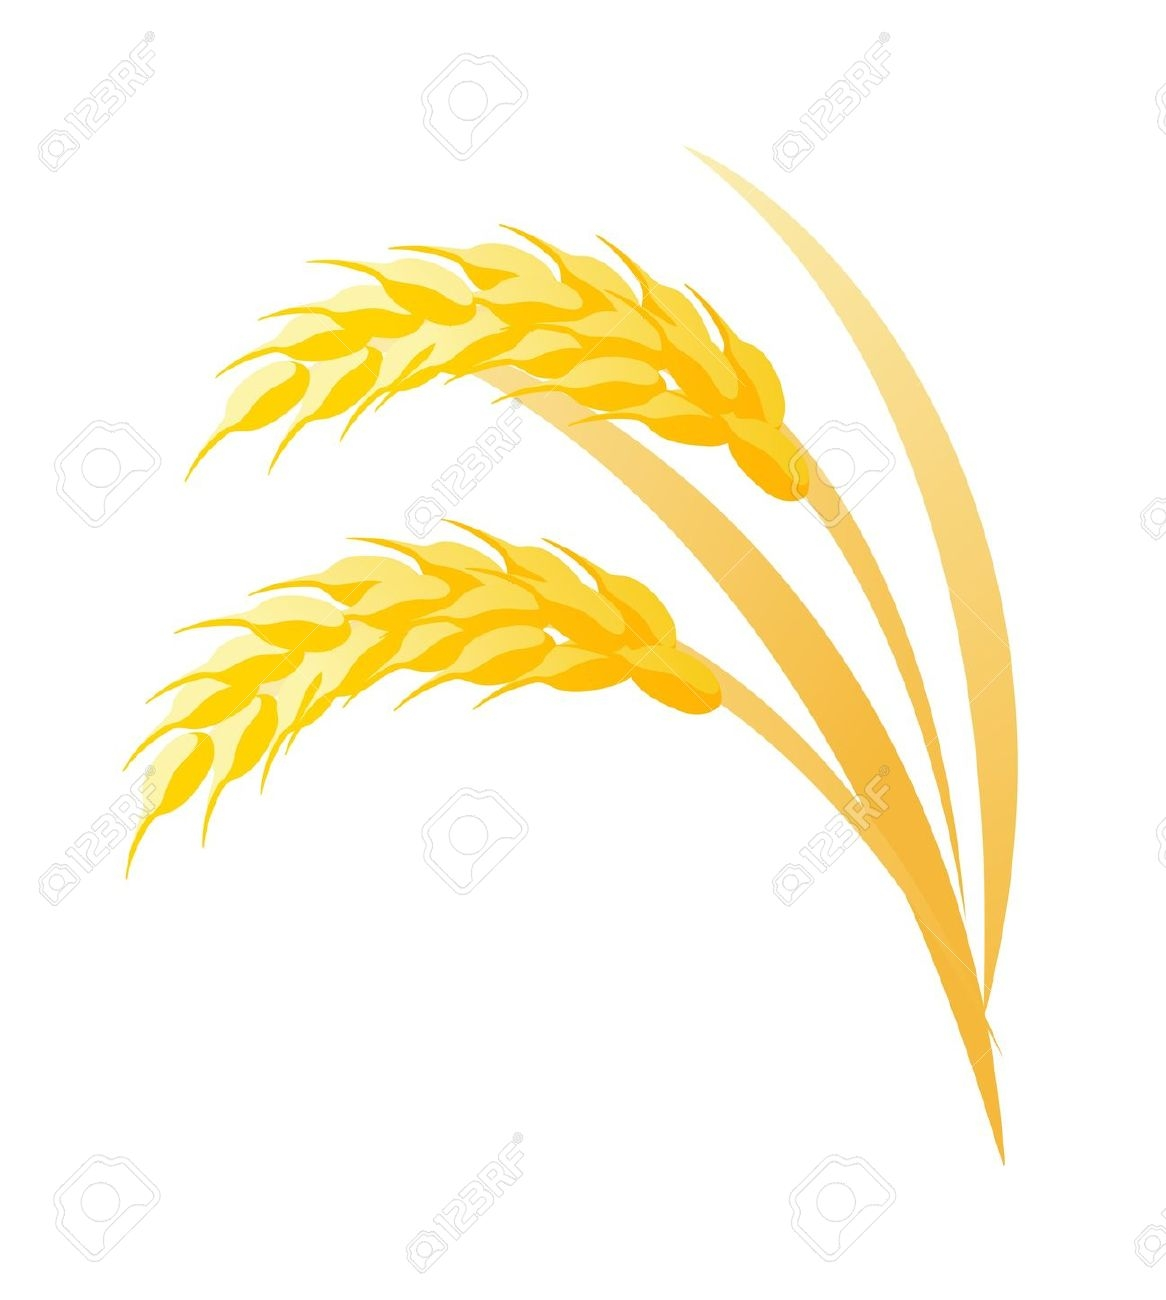 Rice plant clipart.